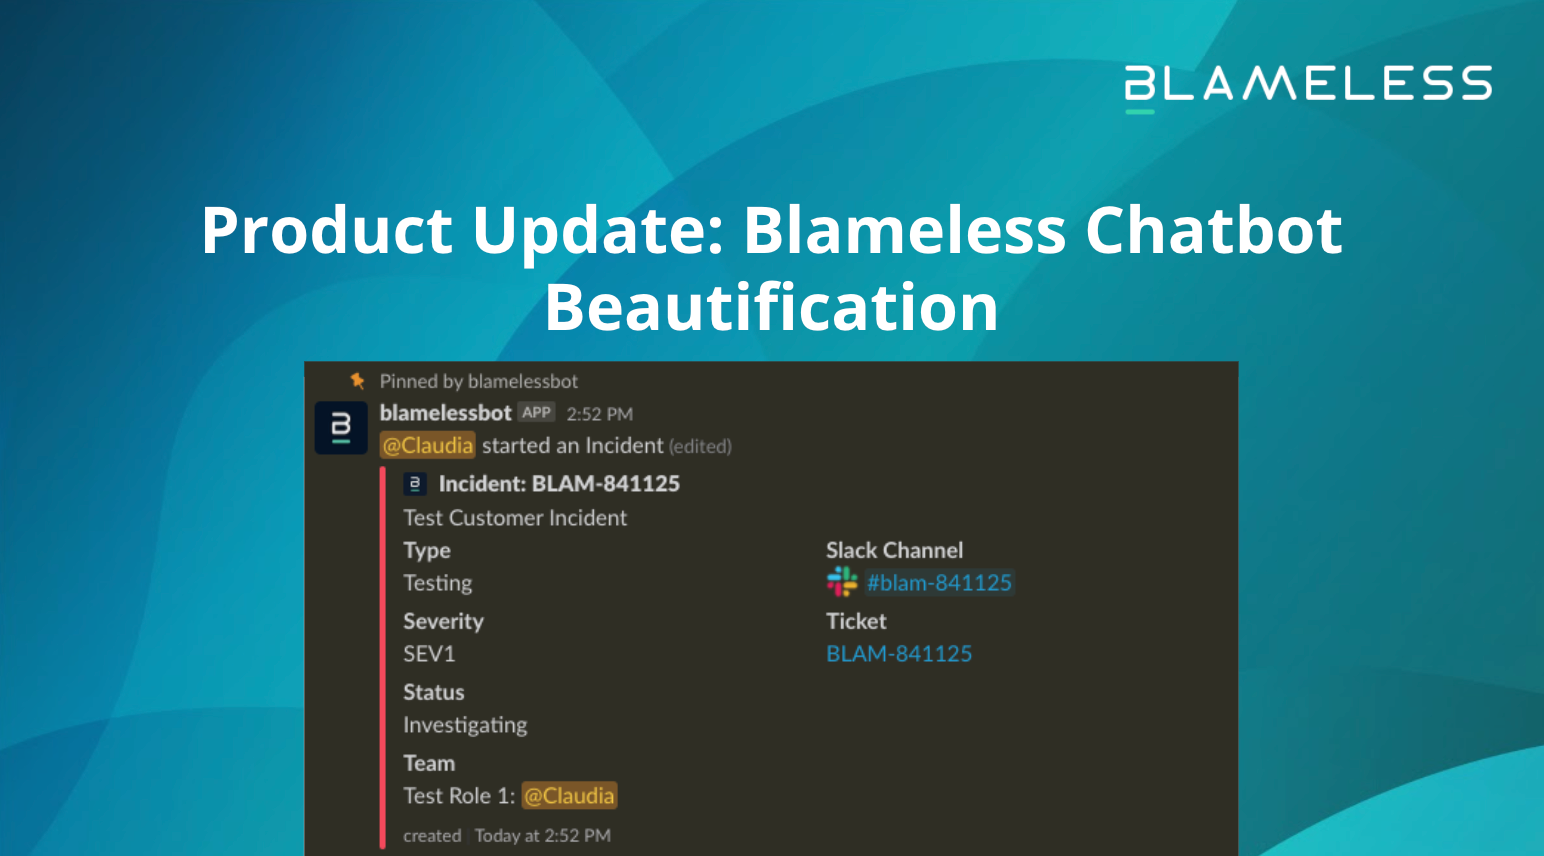 Product Update: Blameless Chatbot Beautification